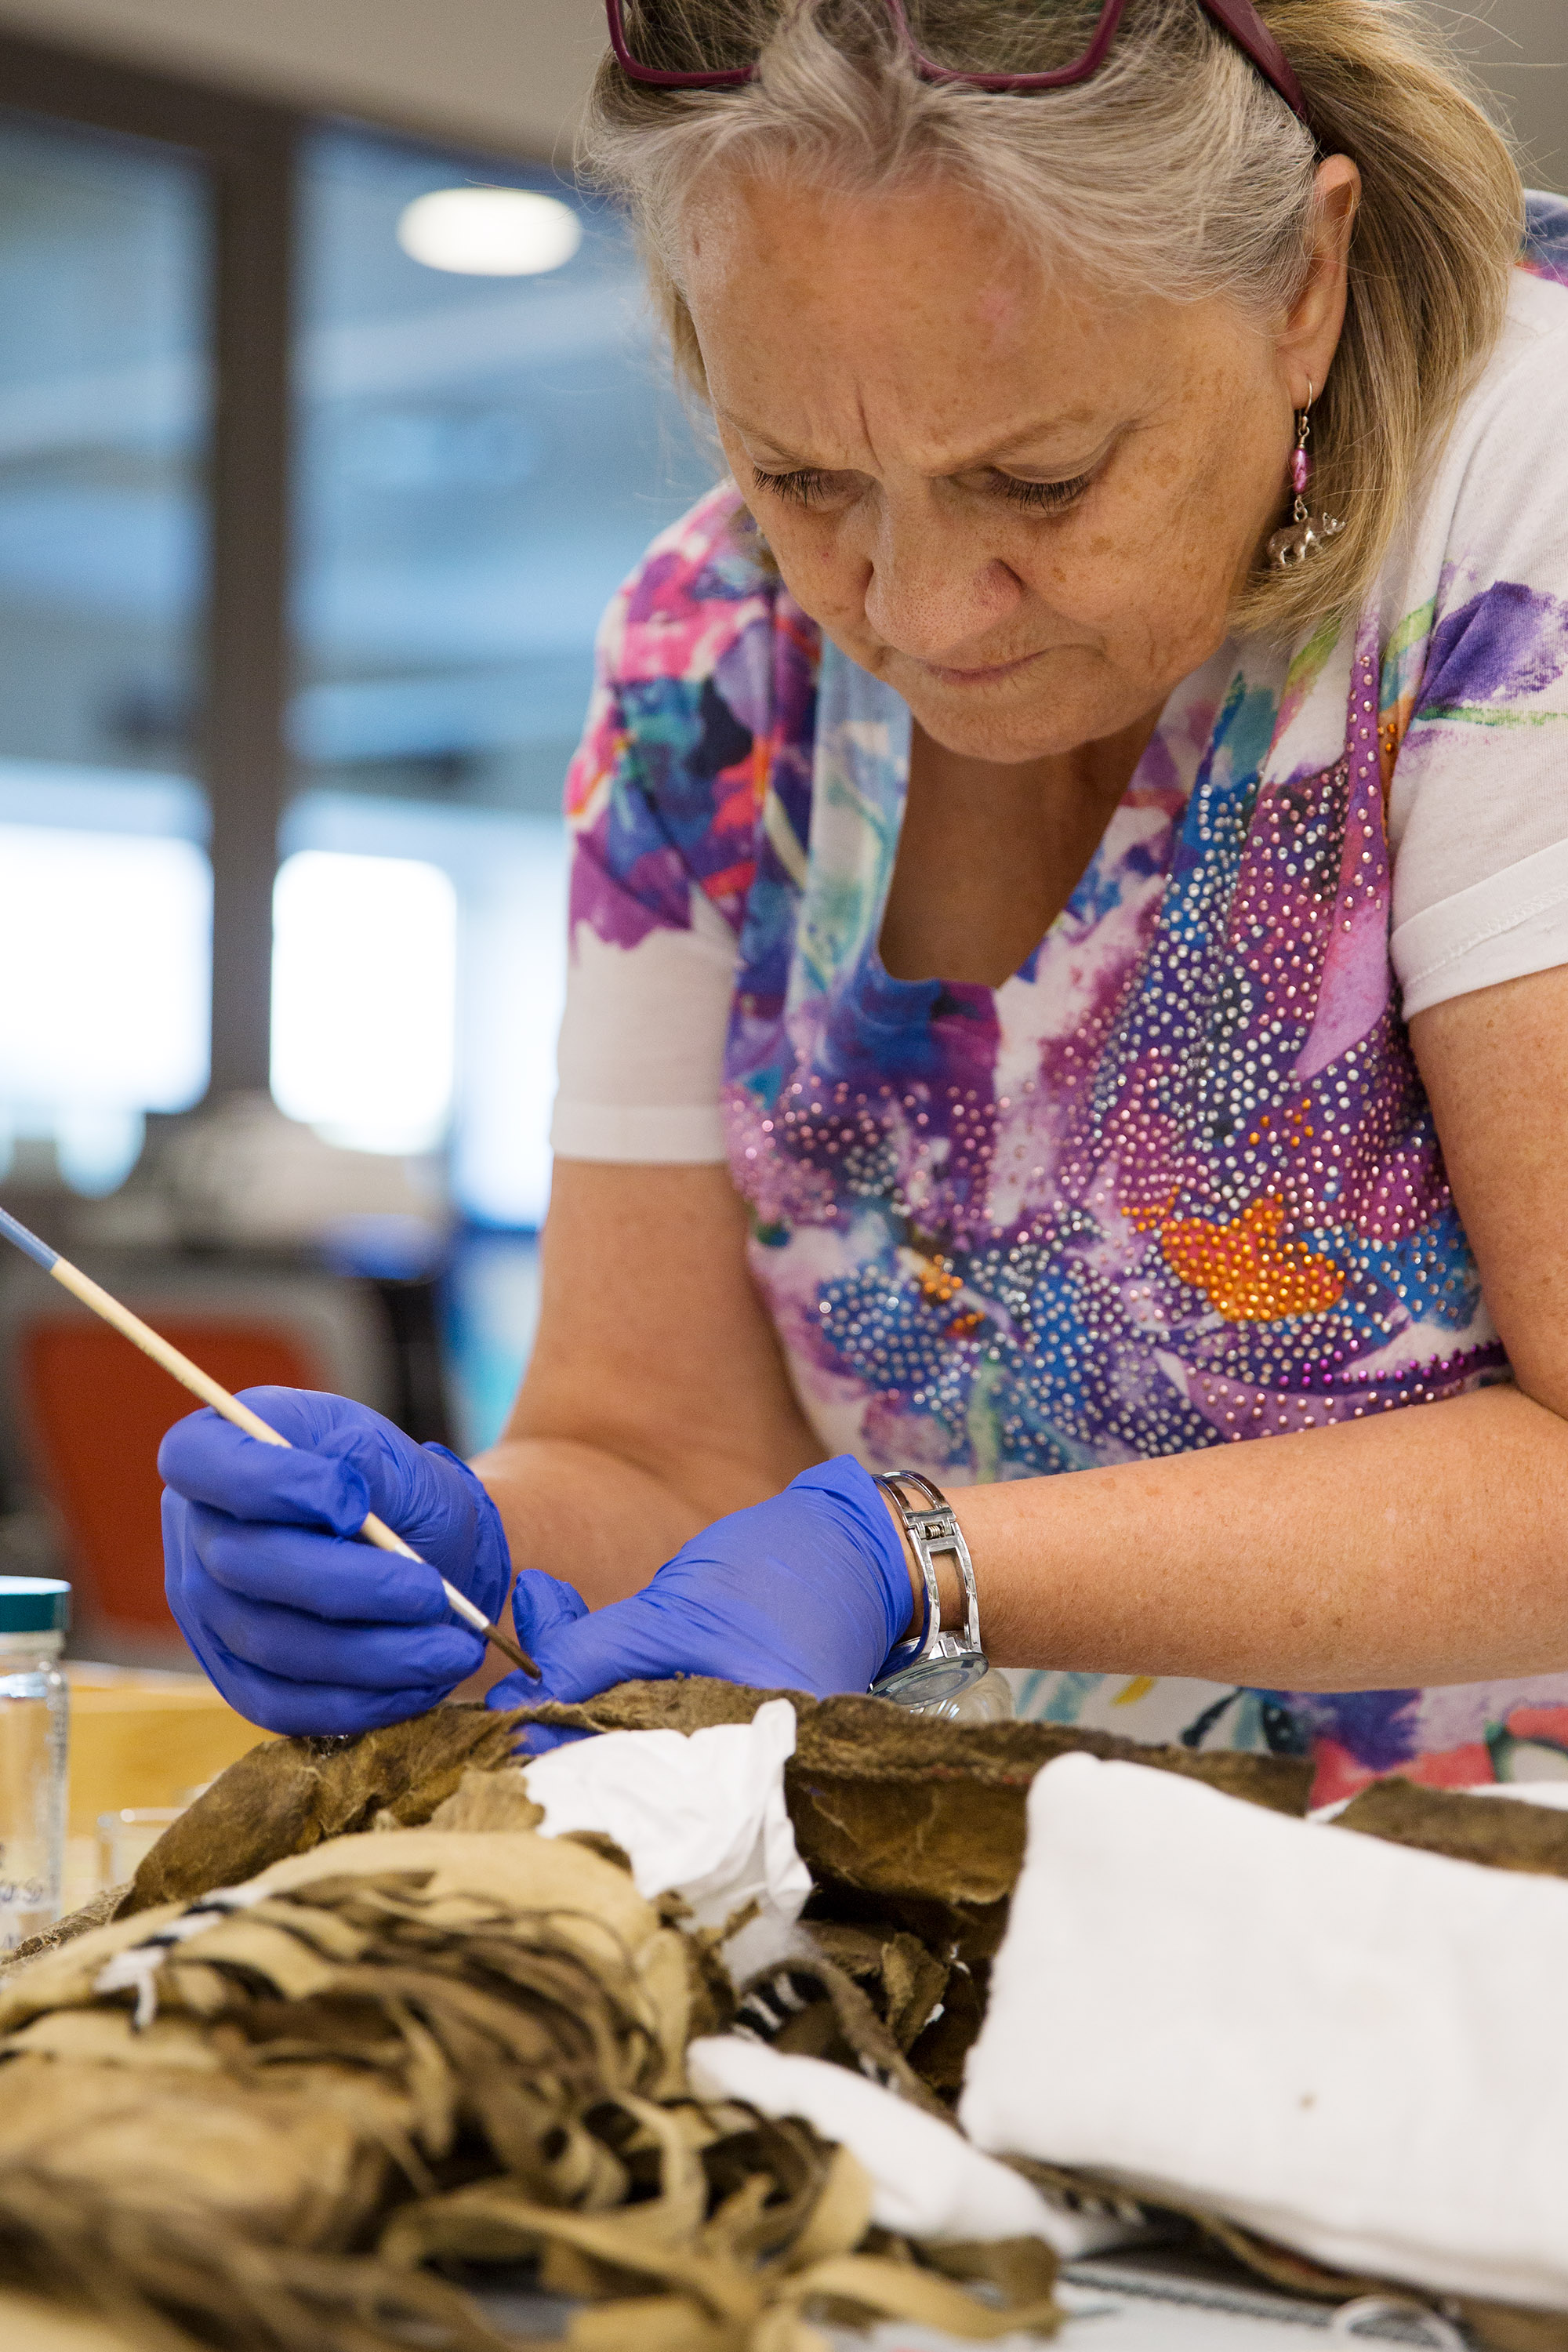 Anthropology Collections Manager, works to restore damage done by light and insects to an Otter-skin quiver collected by explorer John Wesley Powell.